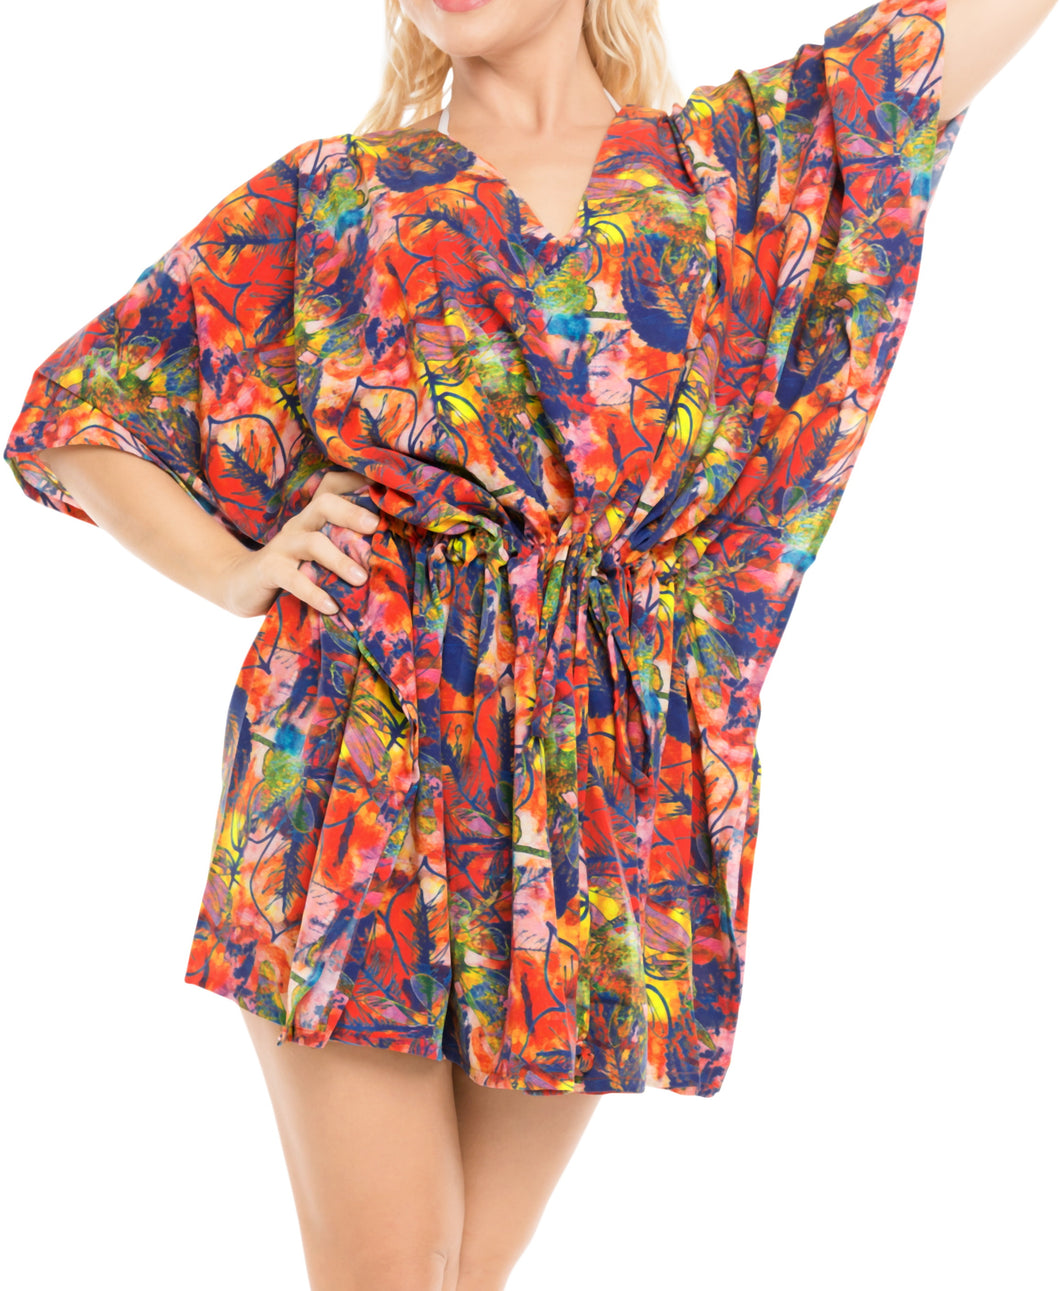 la-leela-bikni-swimwear-soft-fabric-digital-hd-print-cruise-cardigan-cover-up-osfm-14-28-l-4x-multicolor_2101